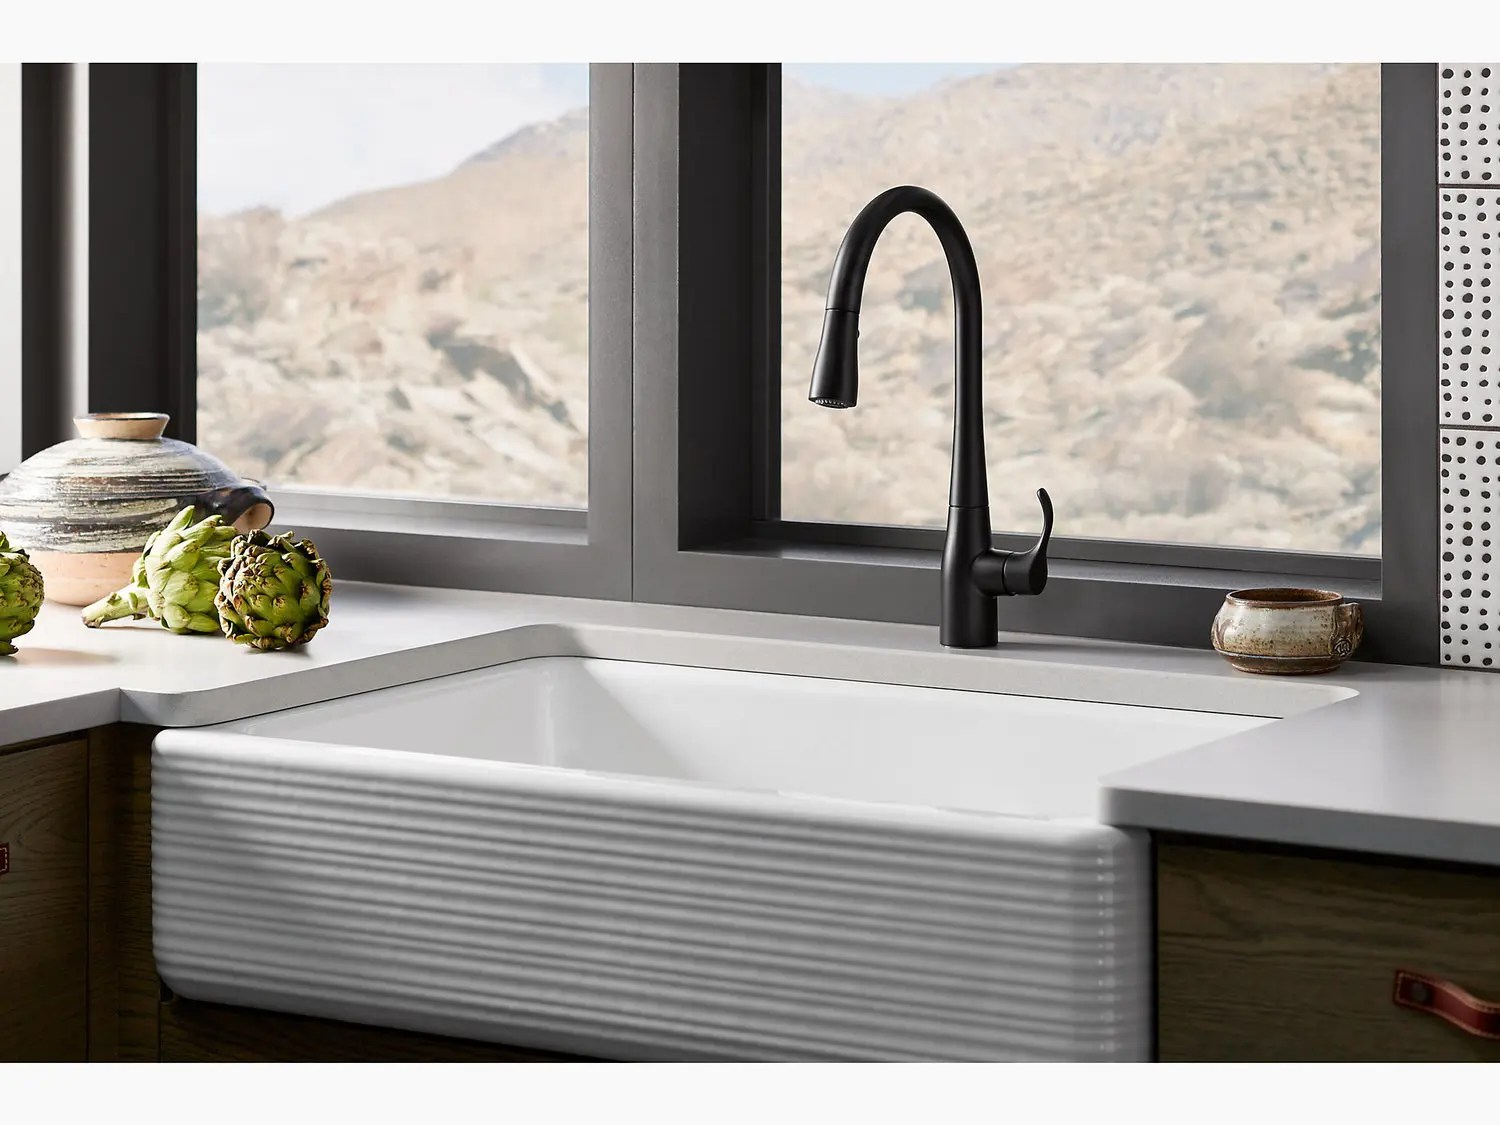 matte black single hole or three hole kitchen sink faucet with 16 5 8 pull down spout docknetik magnetic docking system and a 3 function sprayhead